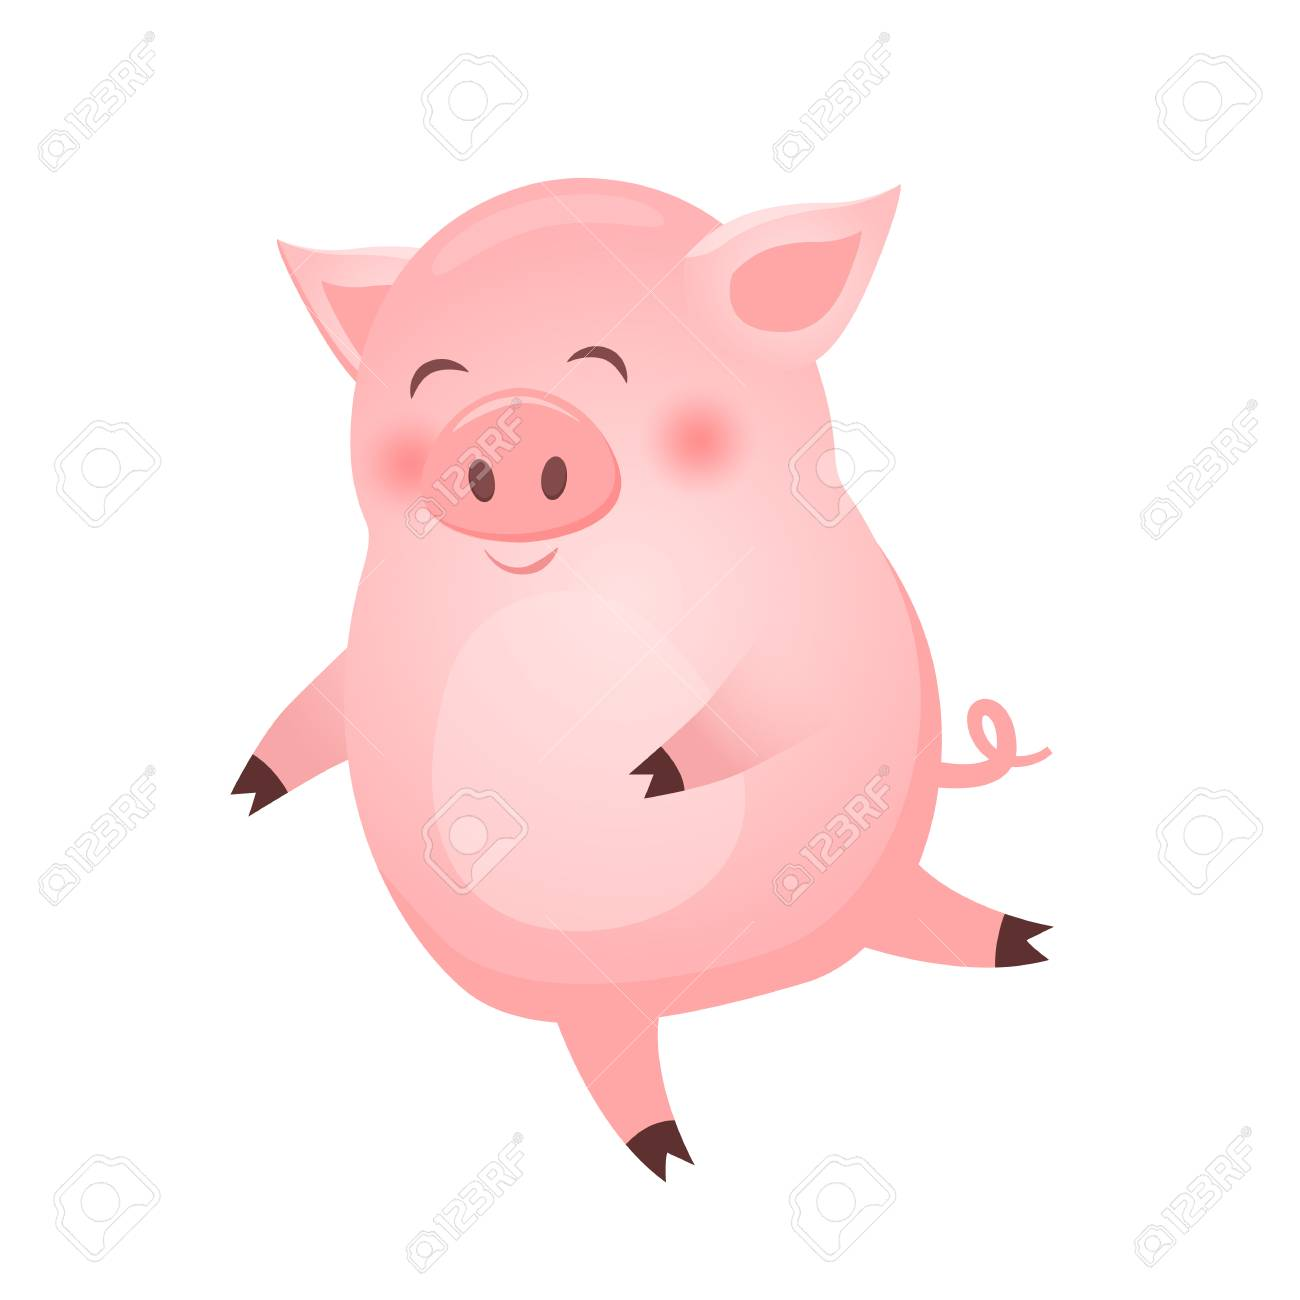 Dancing Pig animal cartoon character isolated on white background..